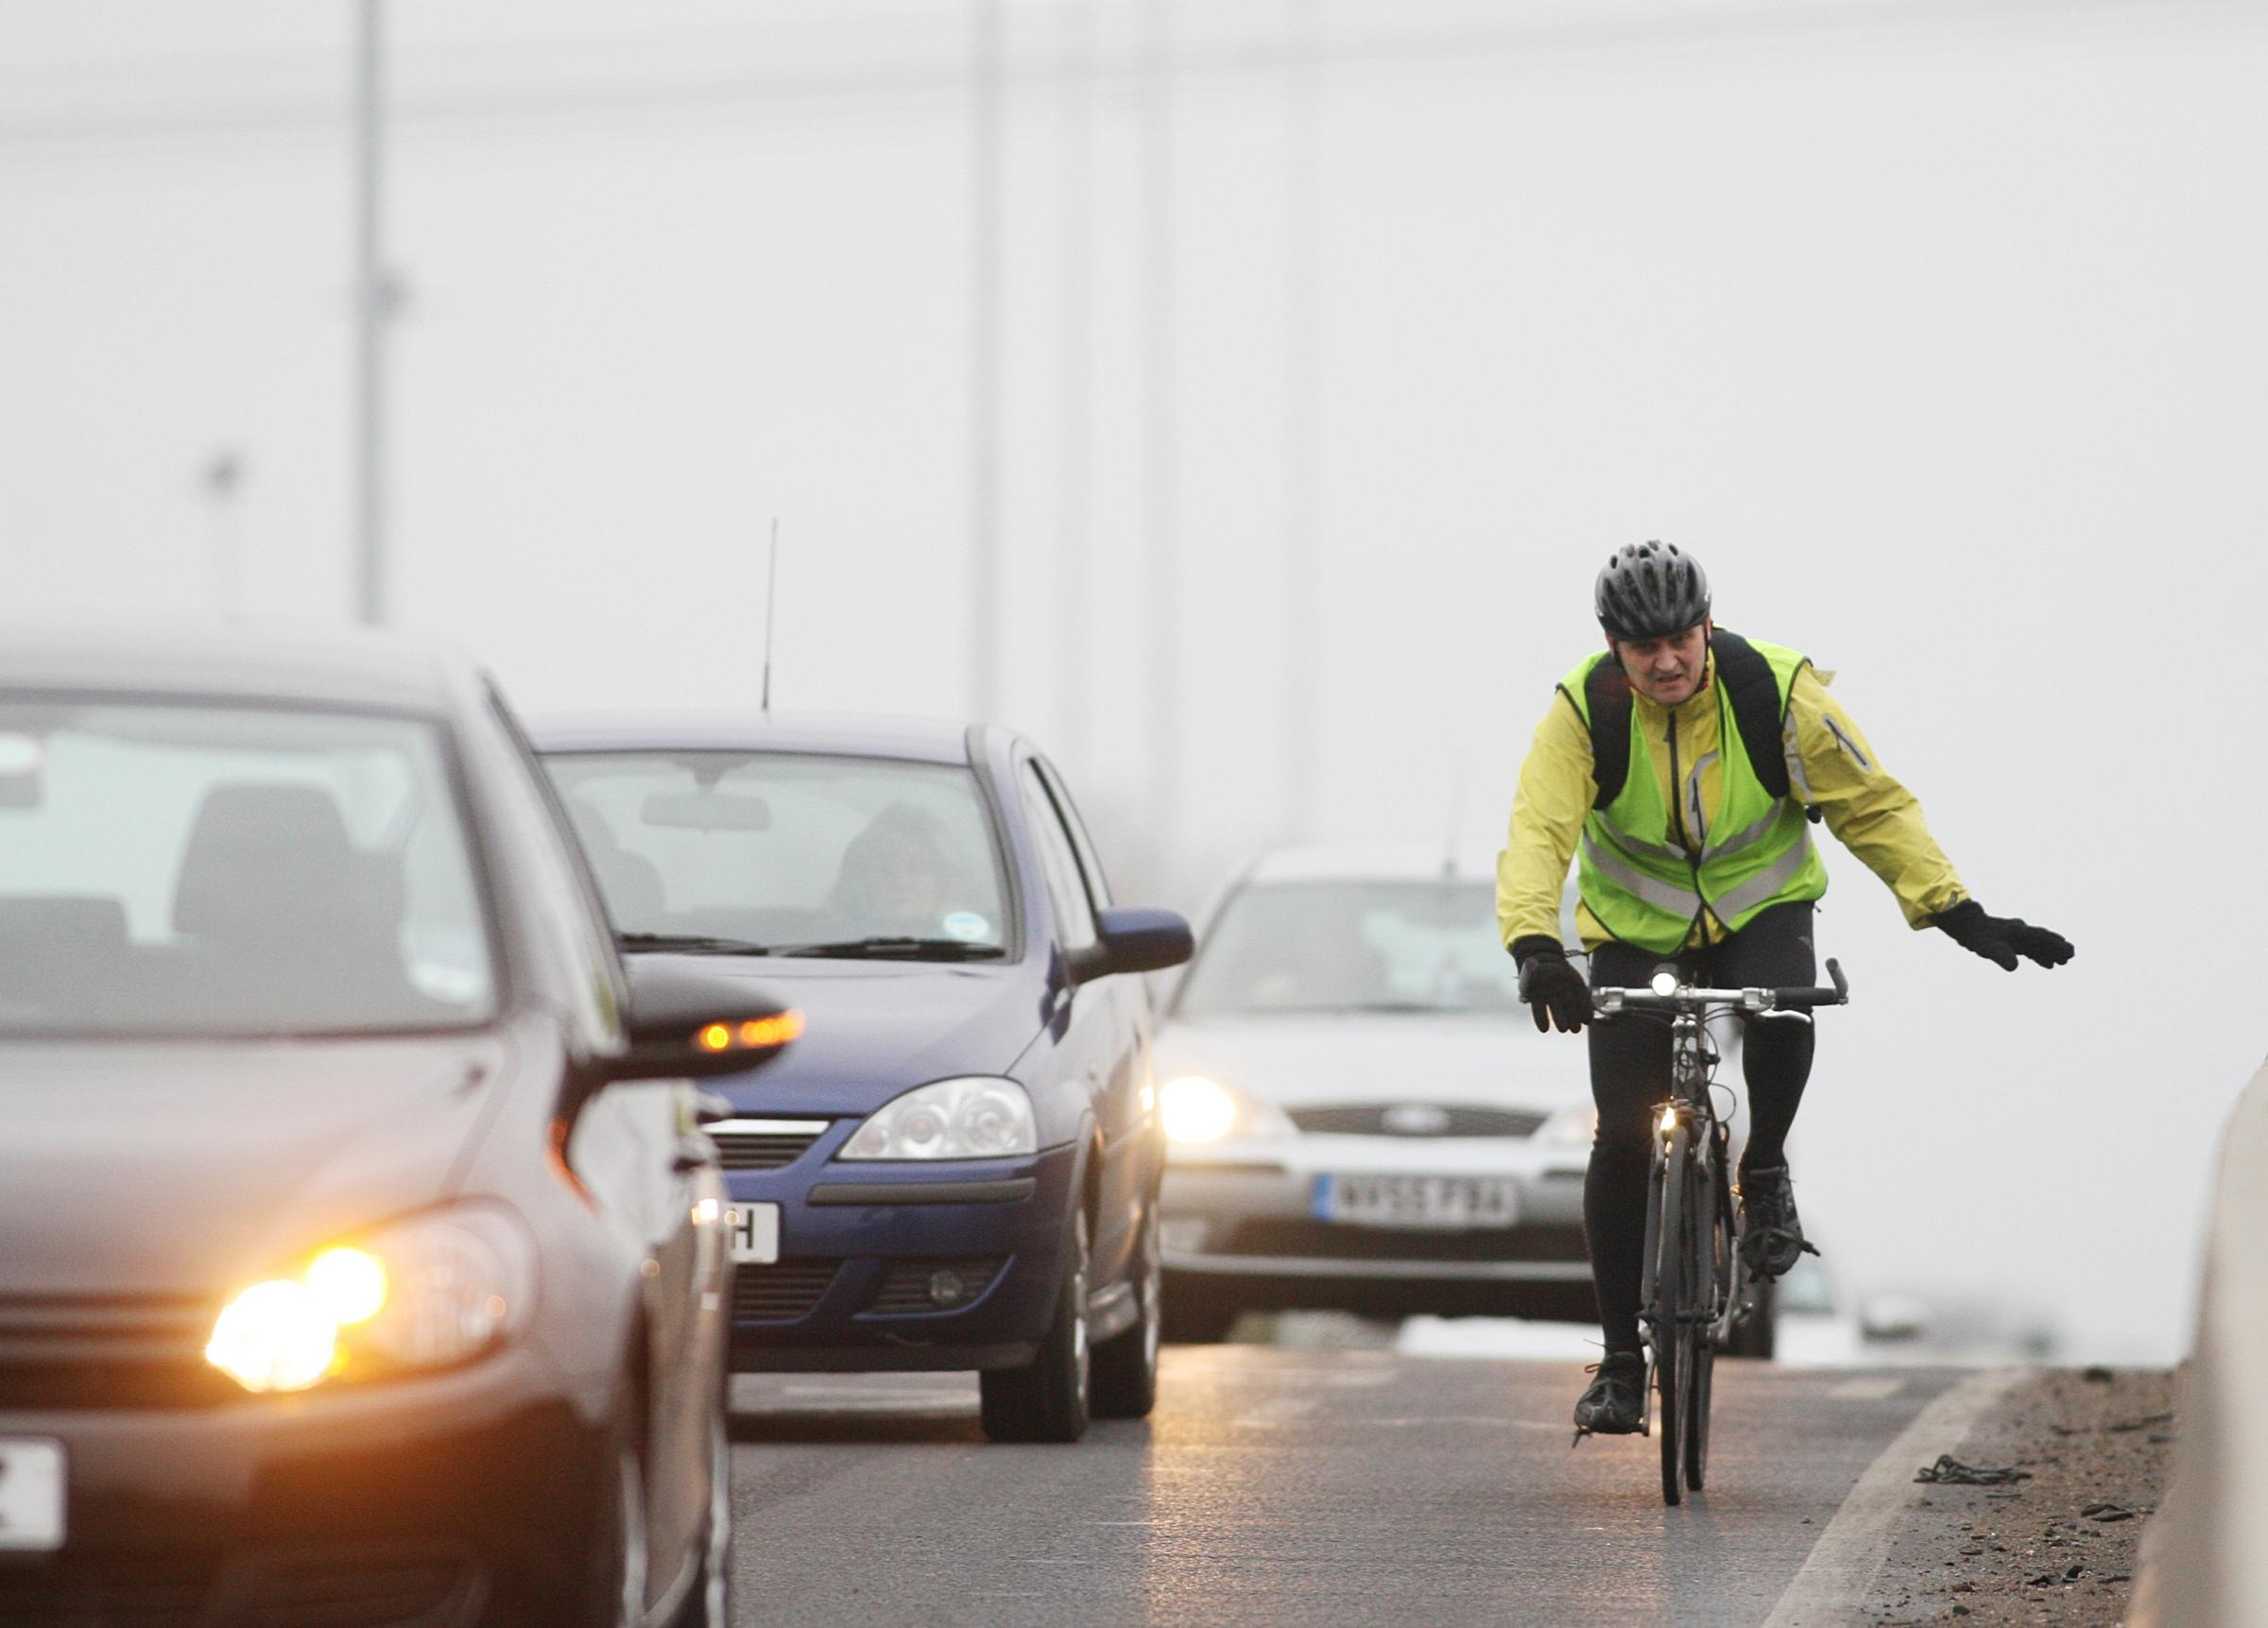 22 Feb 2012 - Cyclist Bike Cycling stock photo of a cyclist in heavy traffic in Southampton.